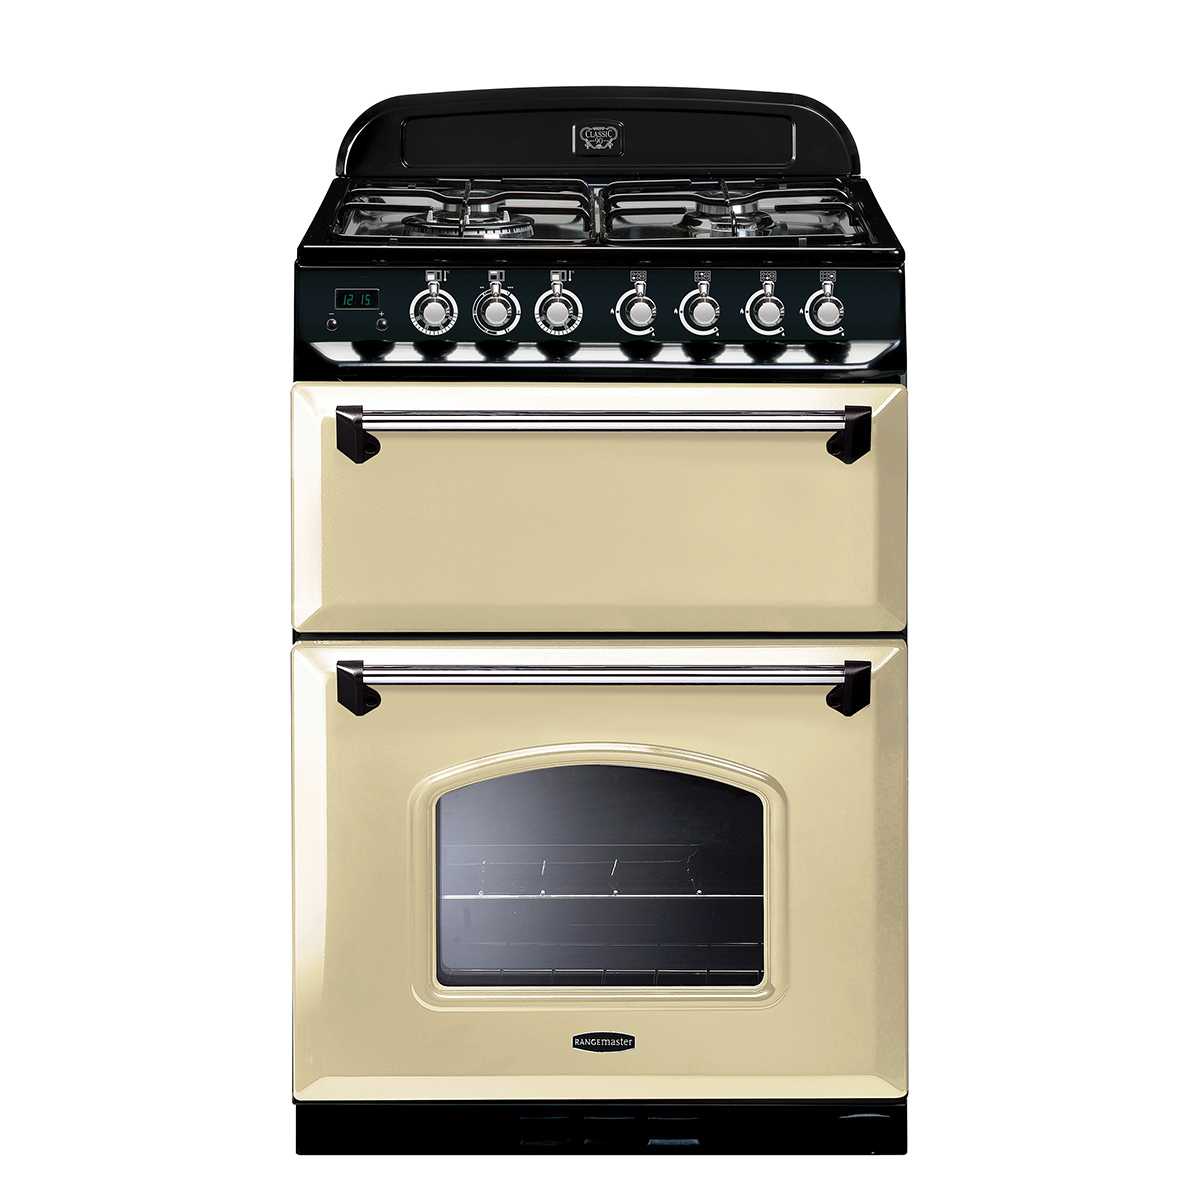 Cooker Reviews Best Cookers Good Housekeeping Institute